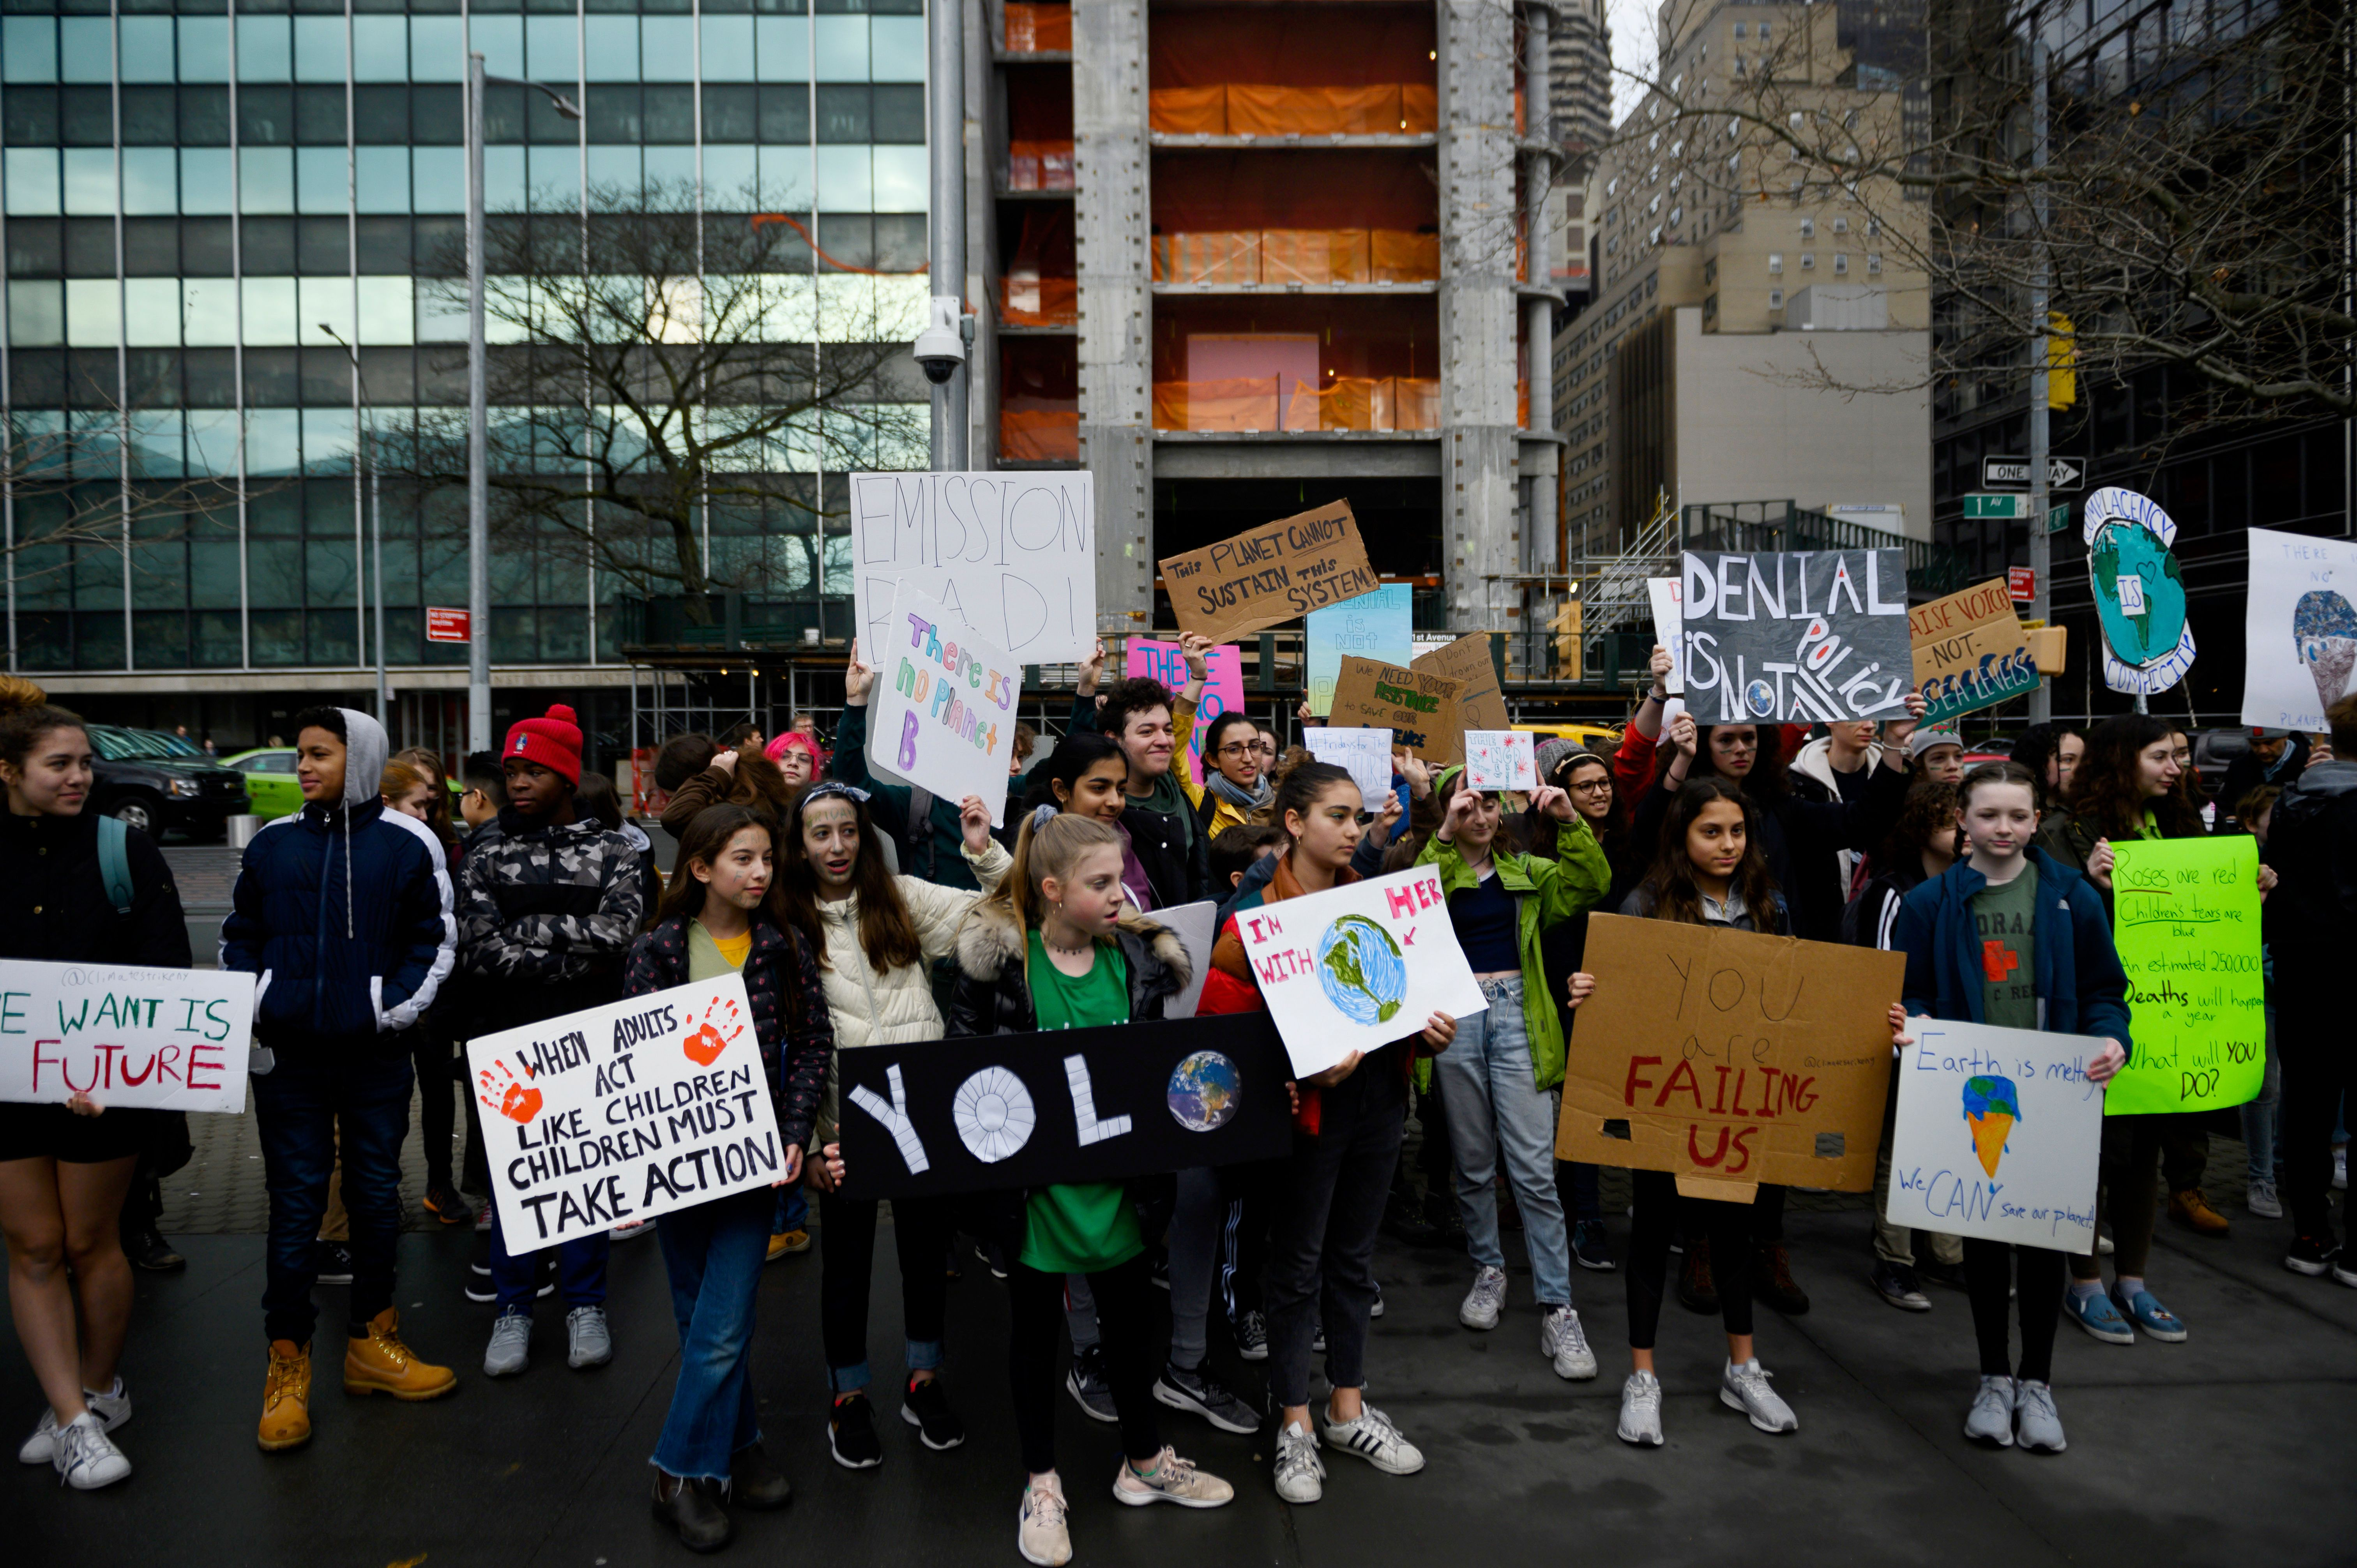 School children hold signs during a Youth Climate Strike in front of the New York Headquarters of the United Nations on March 15, 2019.